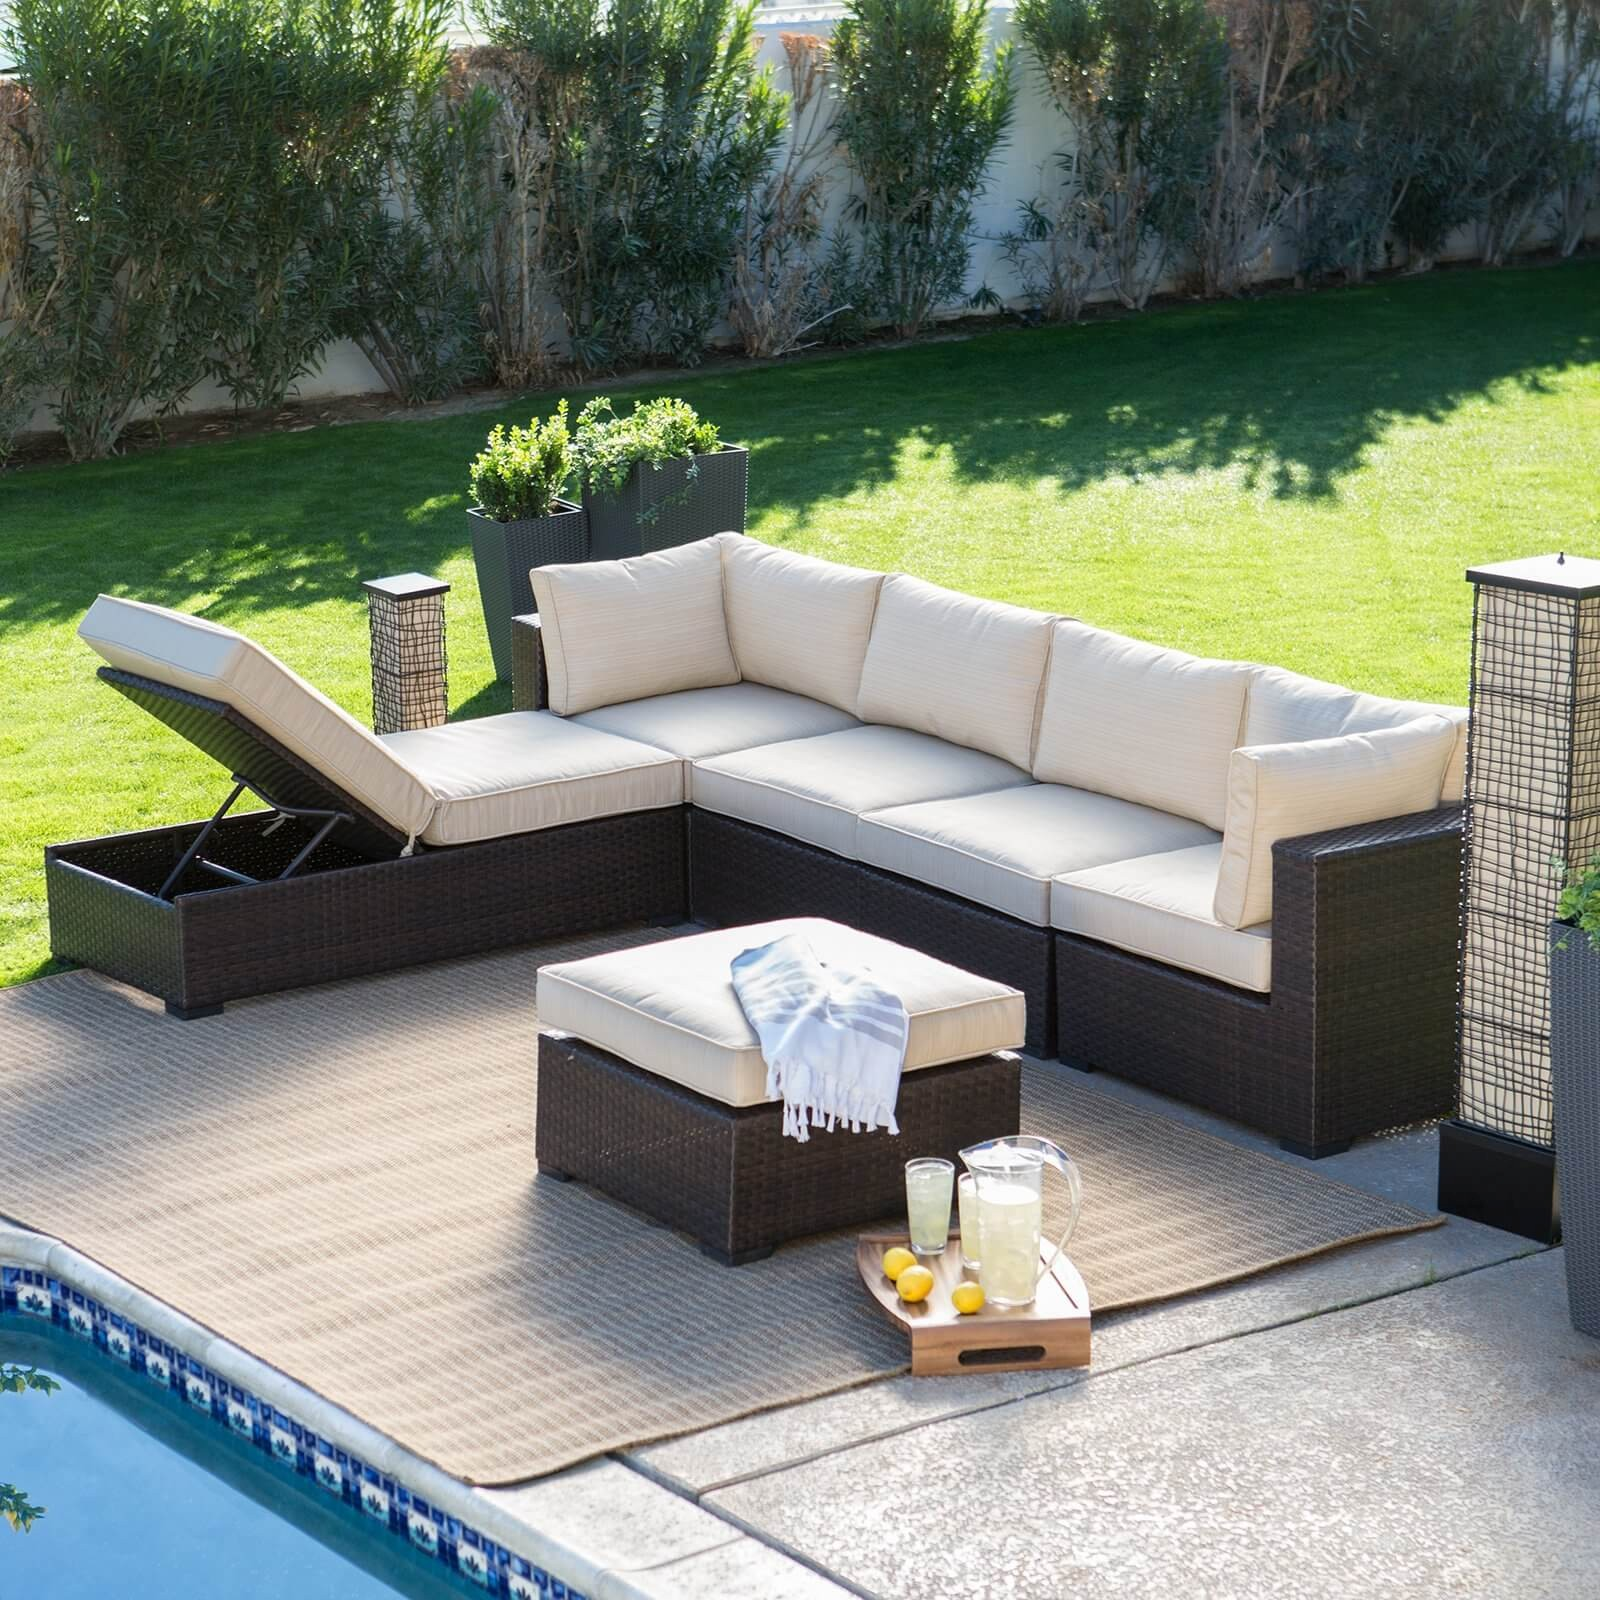 Unique Outdoor Furniture Sectional sofa Pattern - Modern ... on L Shaped Patio Ideas id=59583